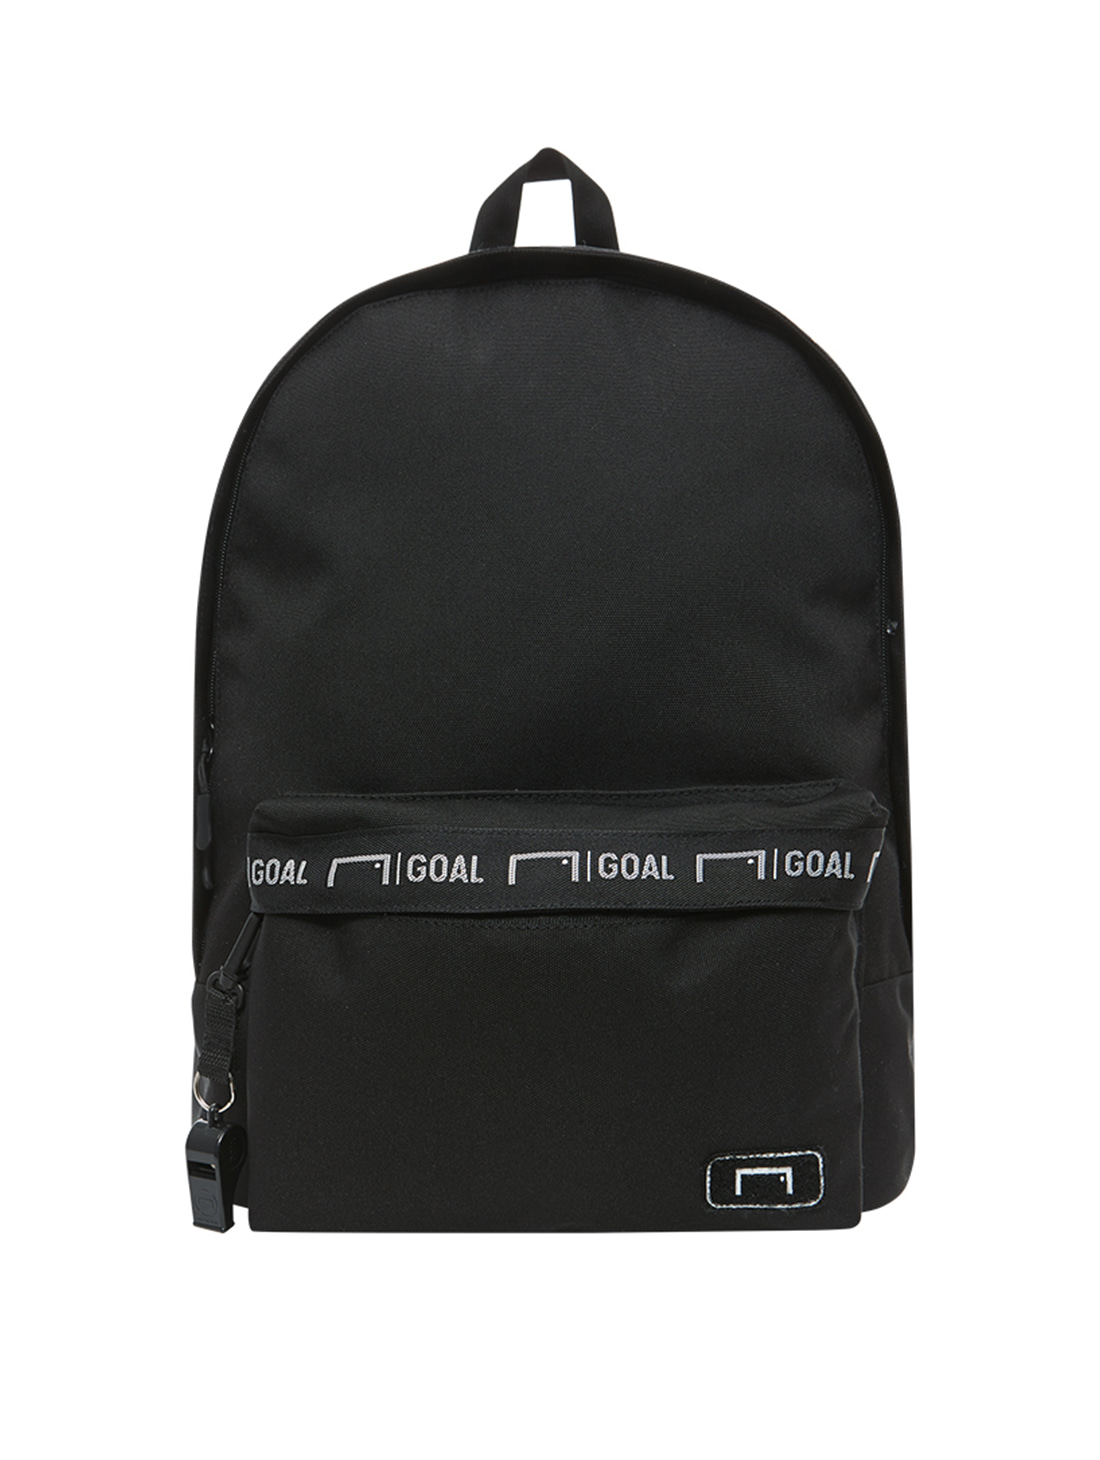 GOALSTUDIO GOAL TAPE BACKPACK - BLACK